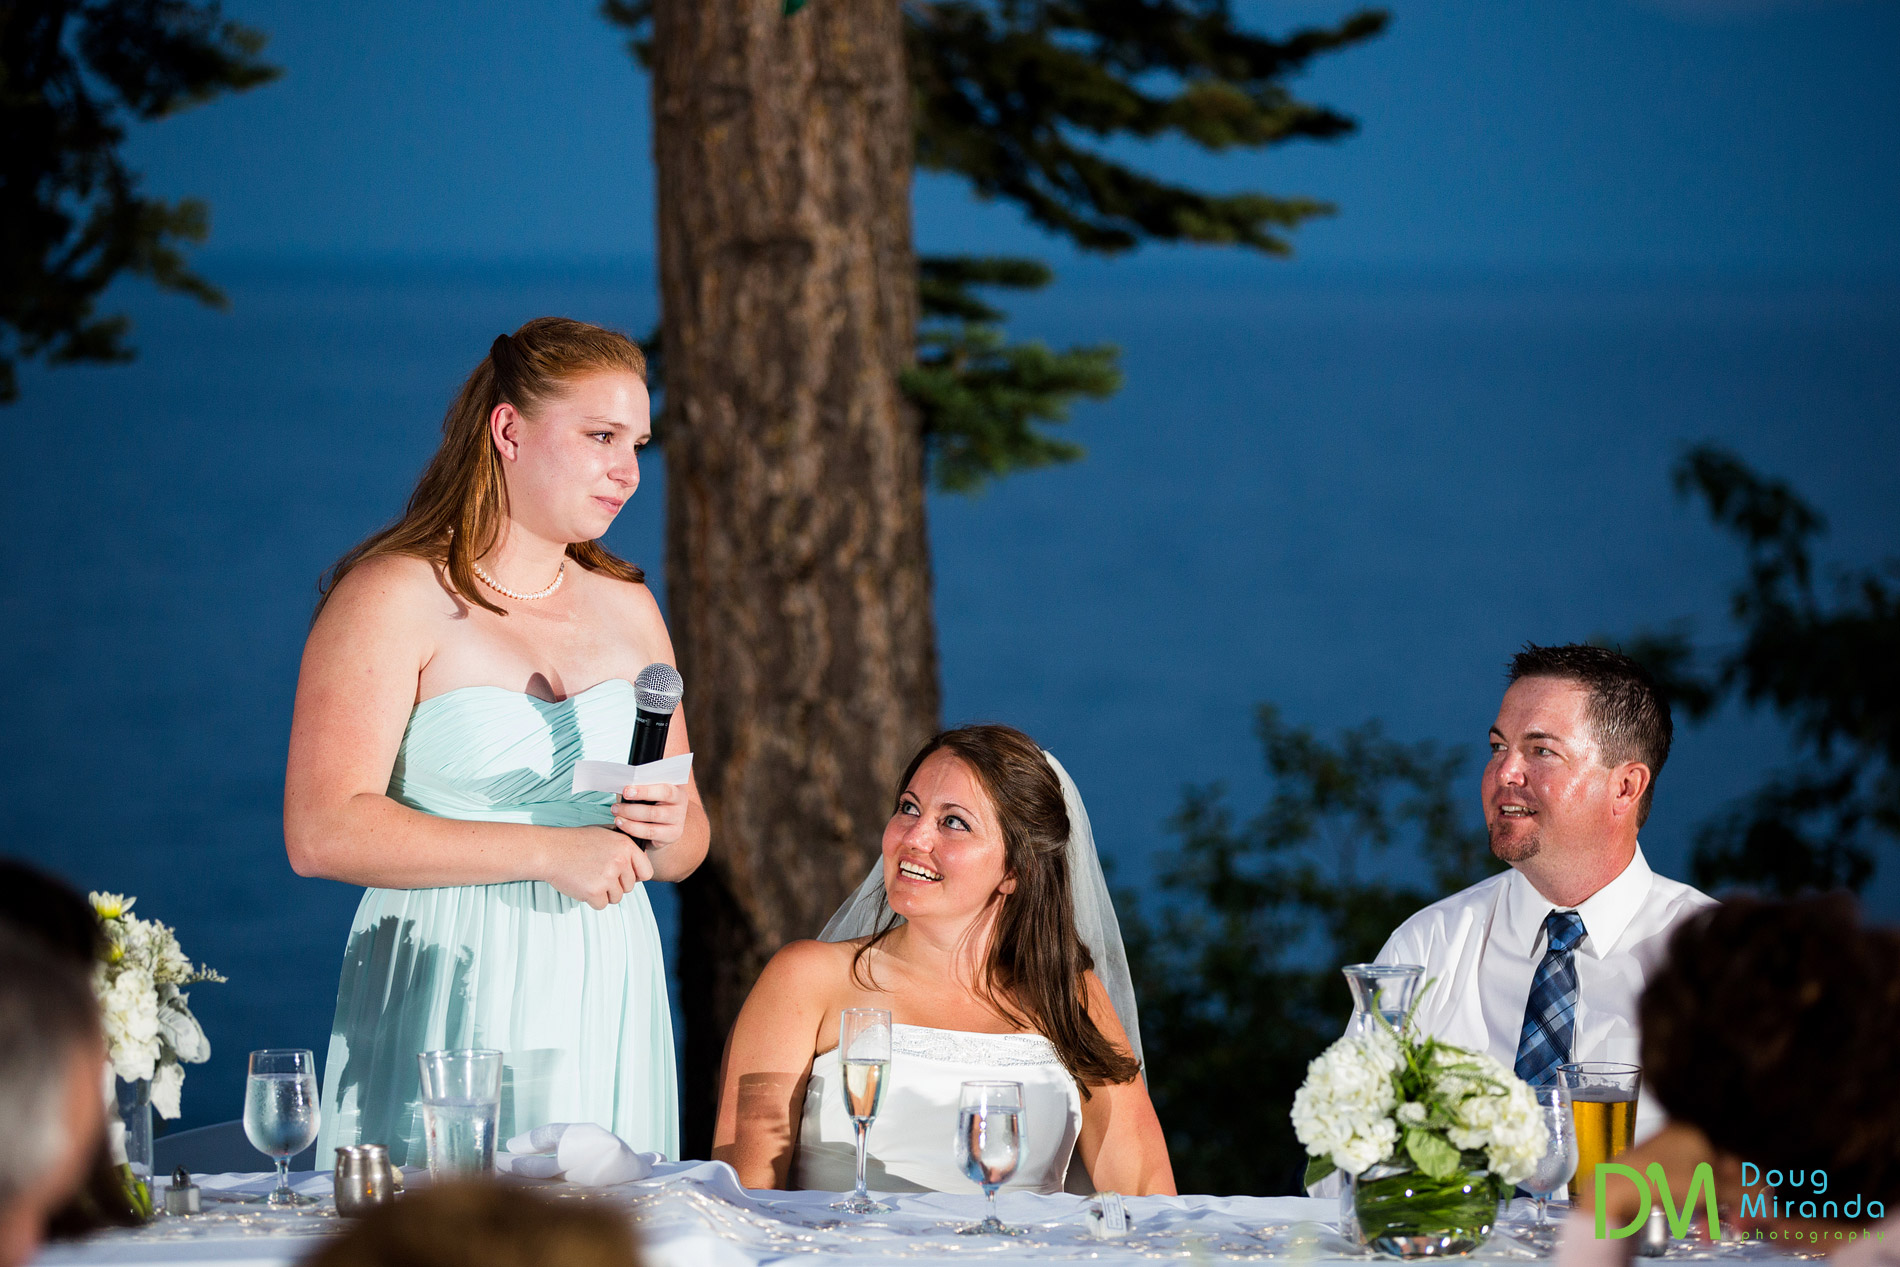 tahoe city wedding photography dollar house